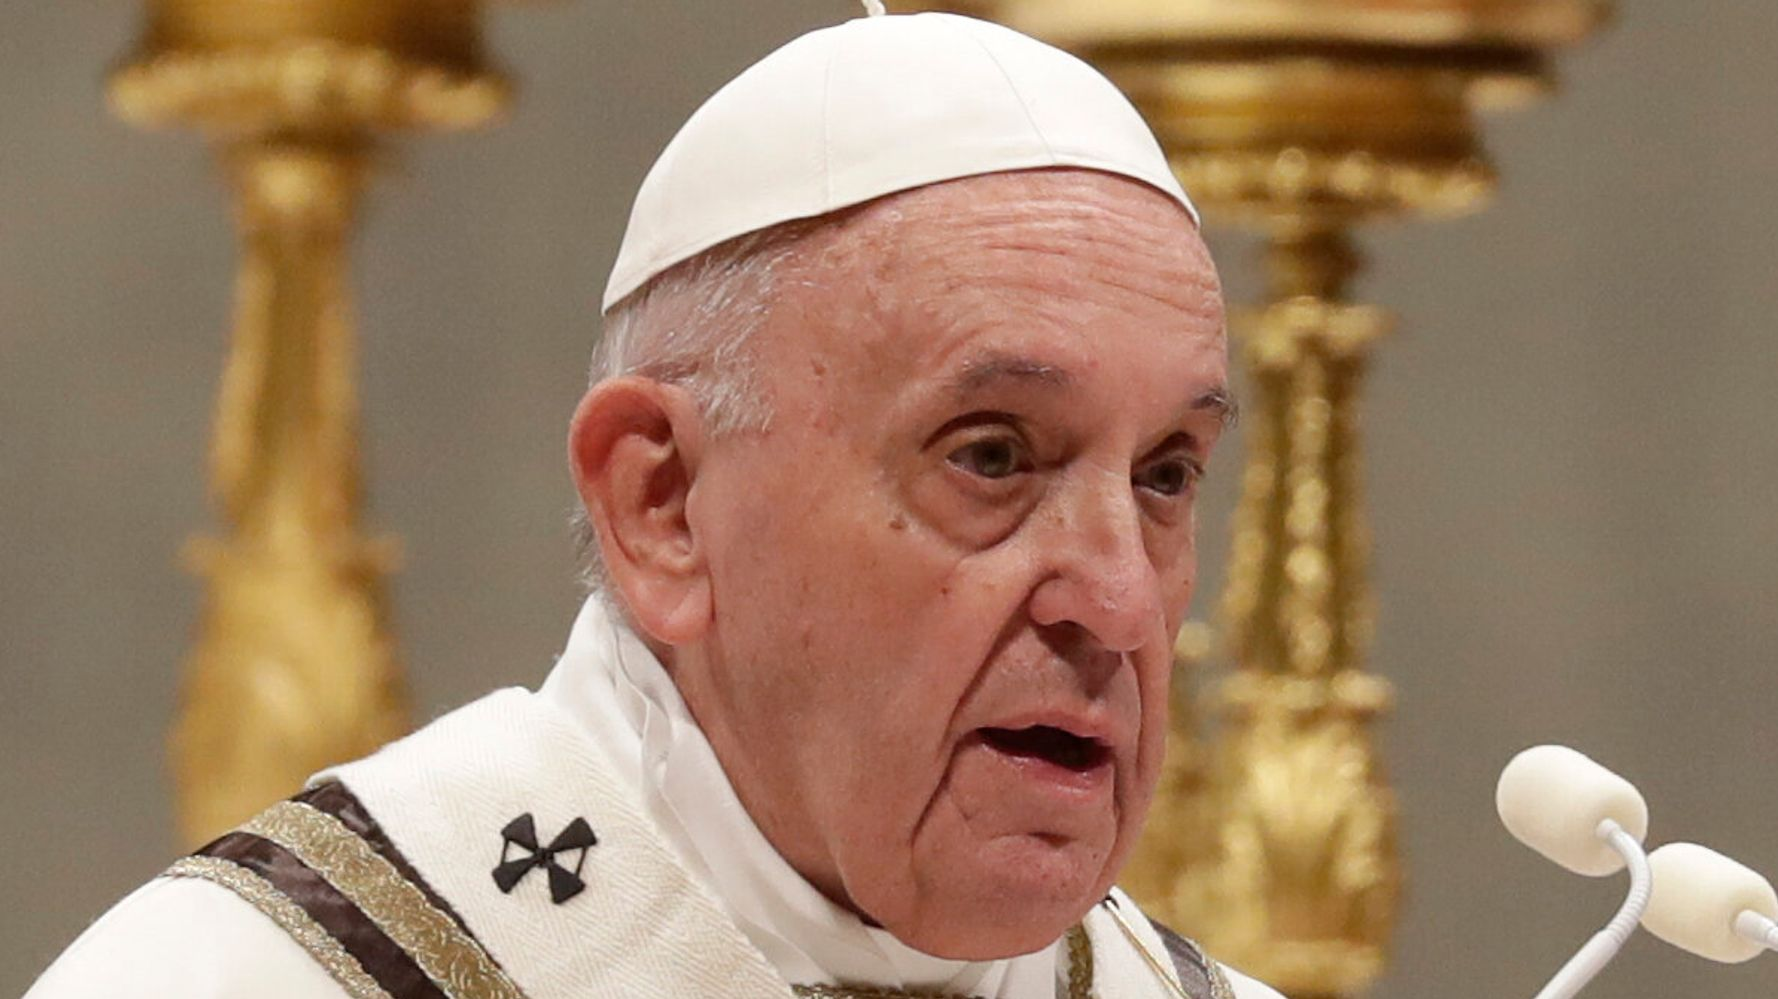 Pope Francis Apologizes For 'Bad Example' Over Pilgrim Arm Slap